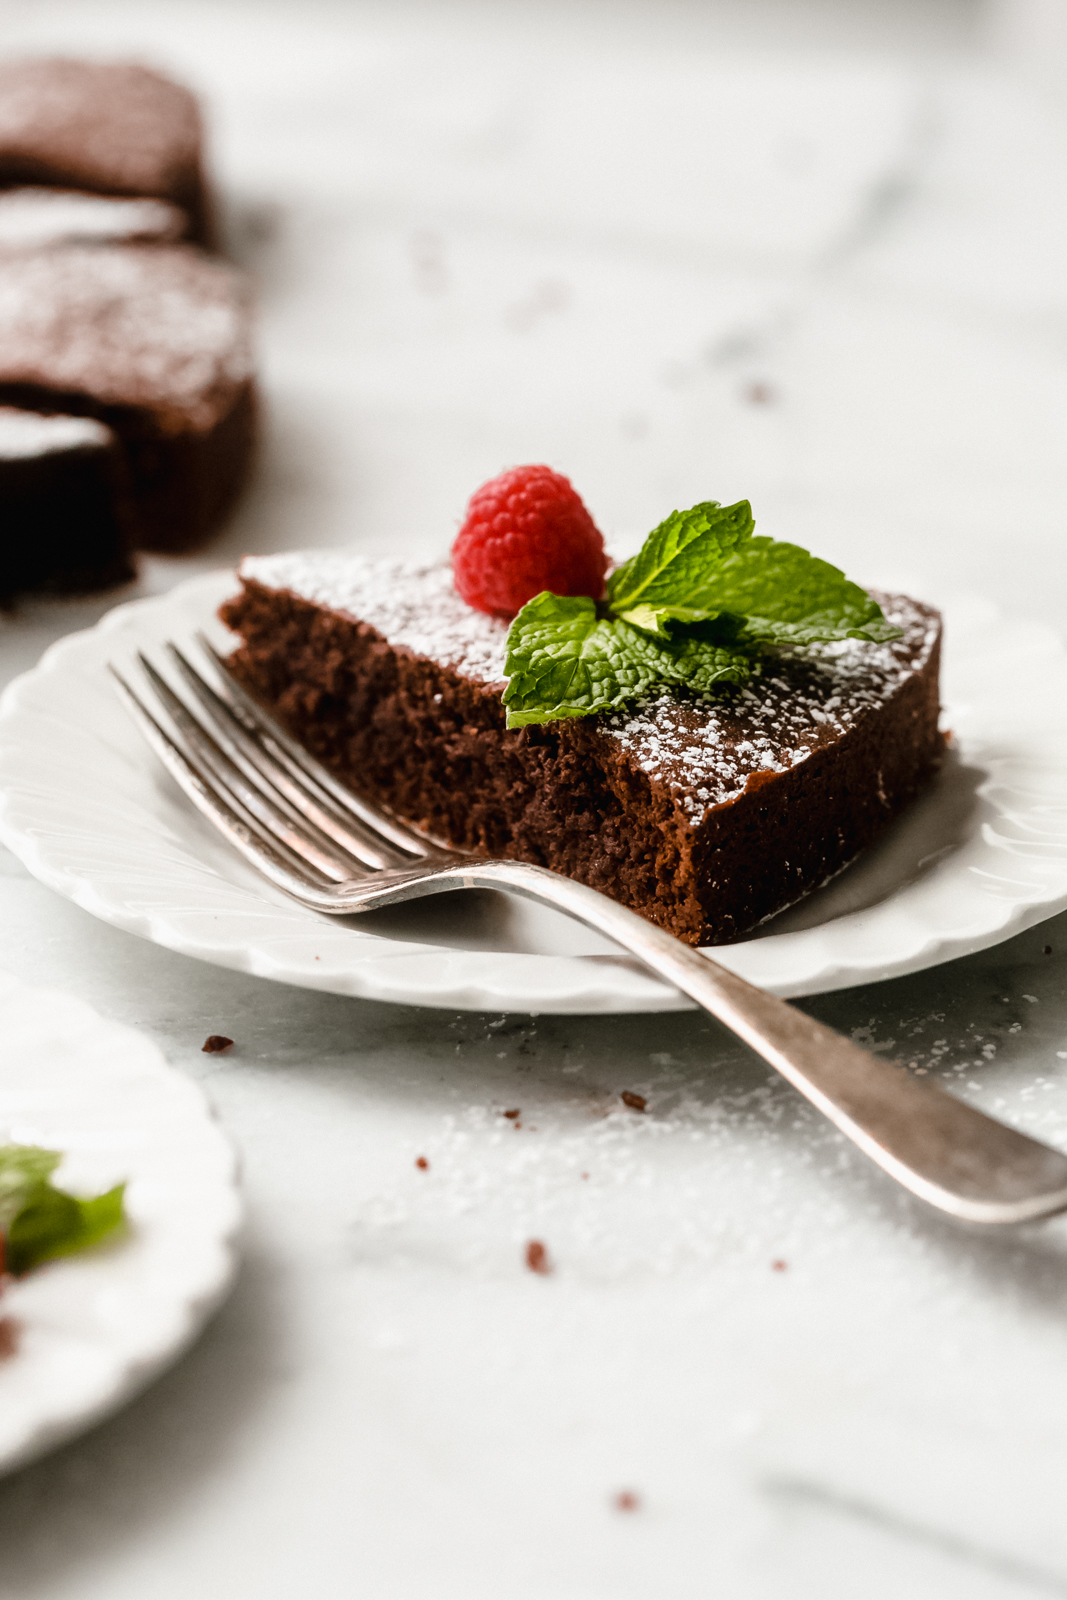 plate with fork and a slice of chocolate cake topped with powdered sugar, raspnberry, and mint